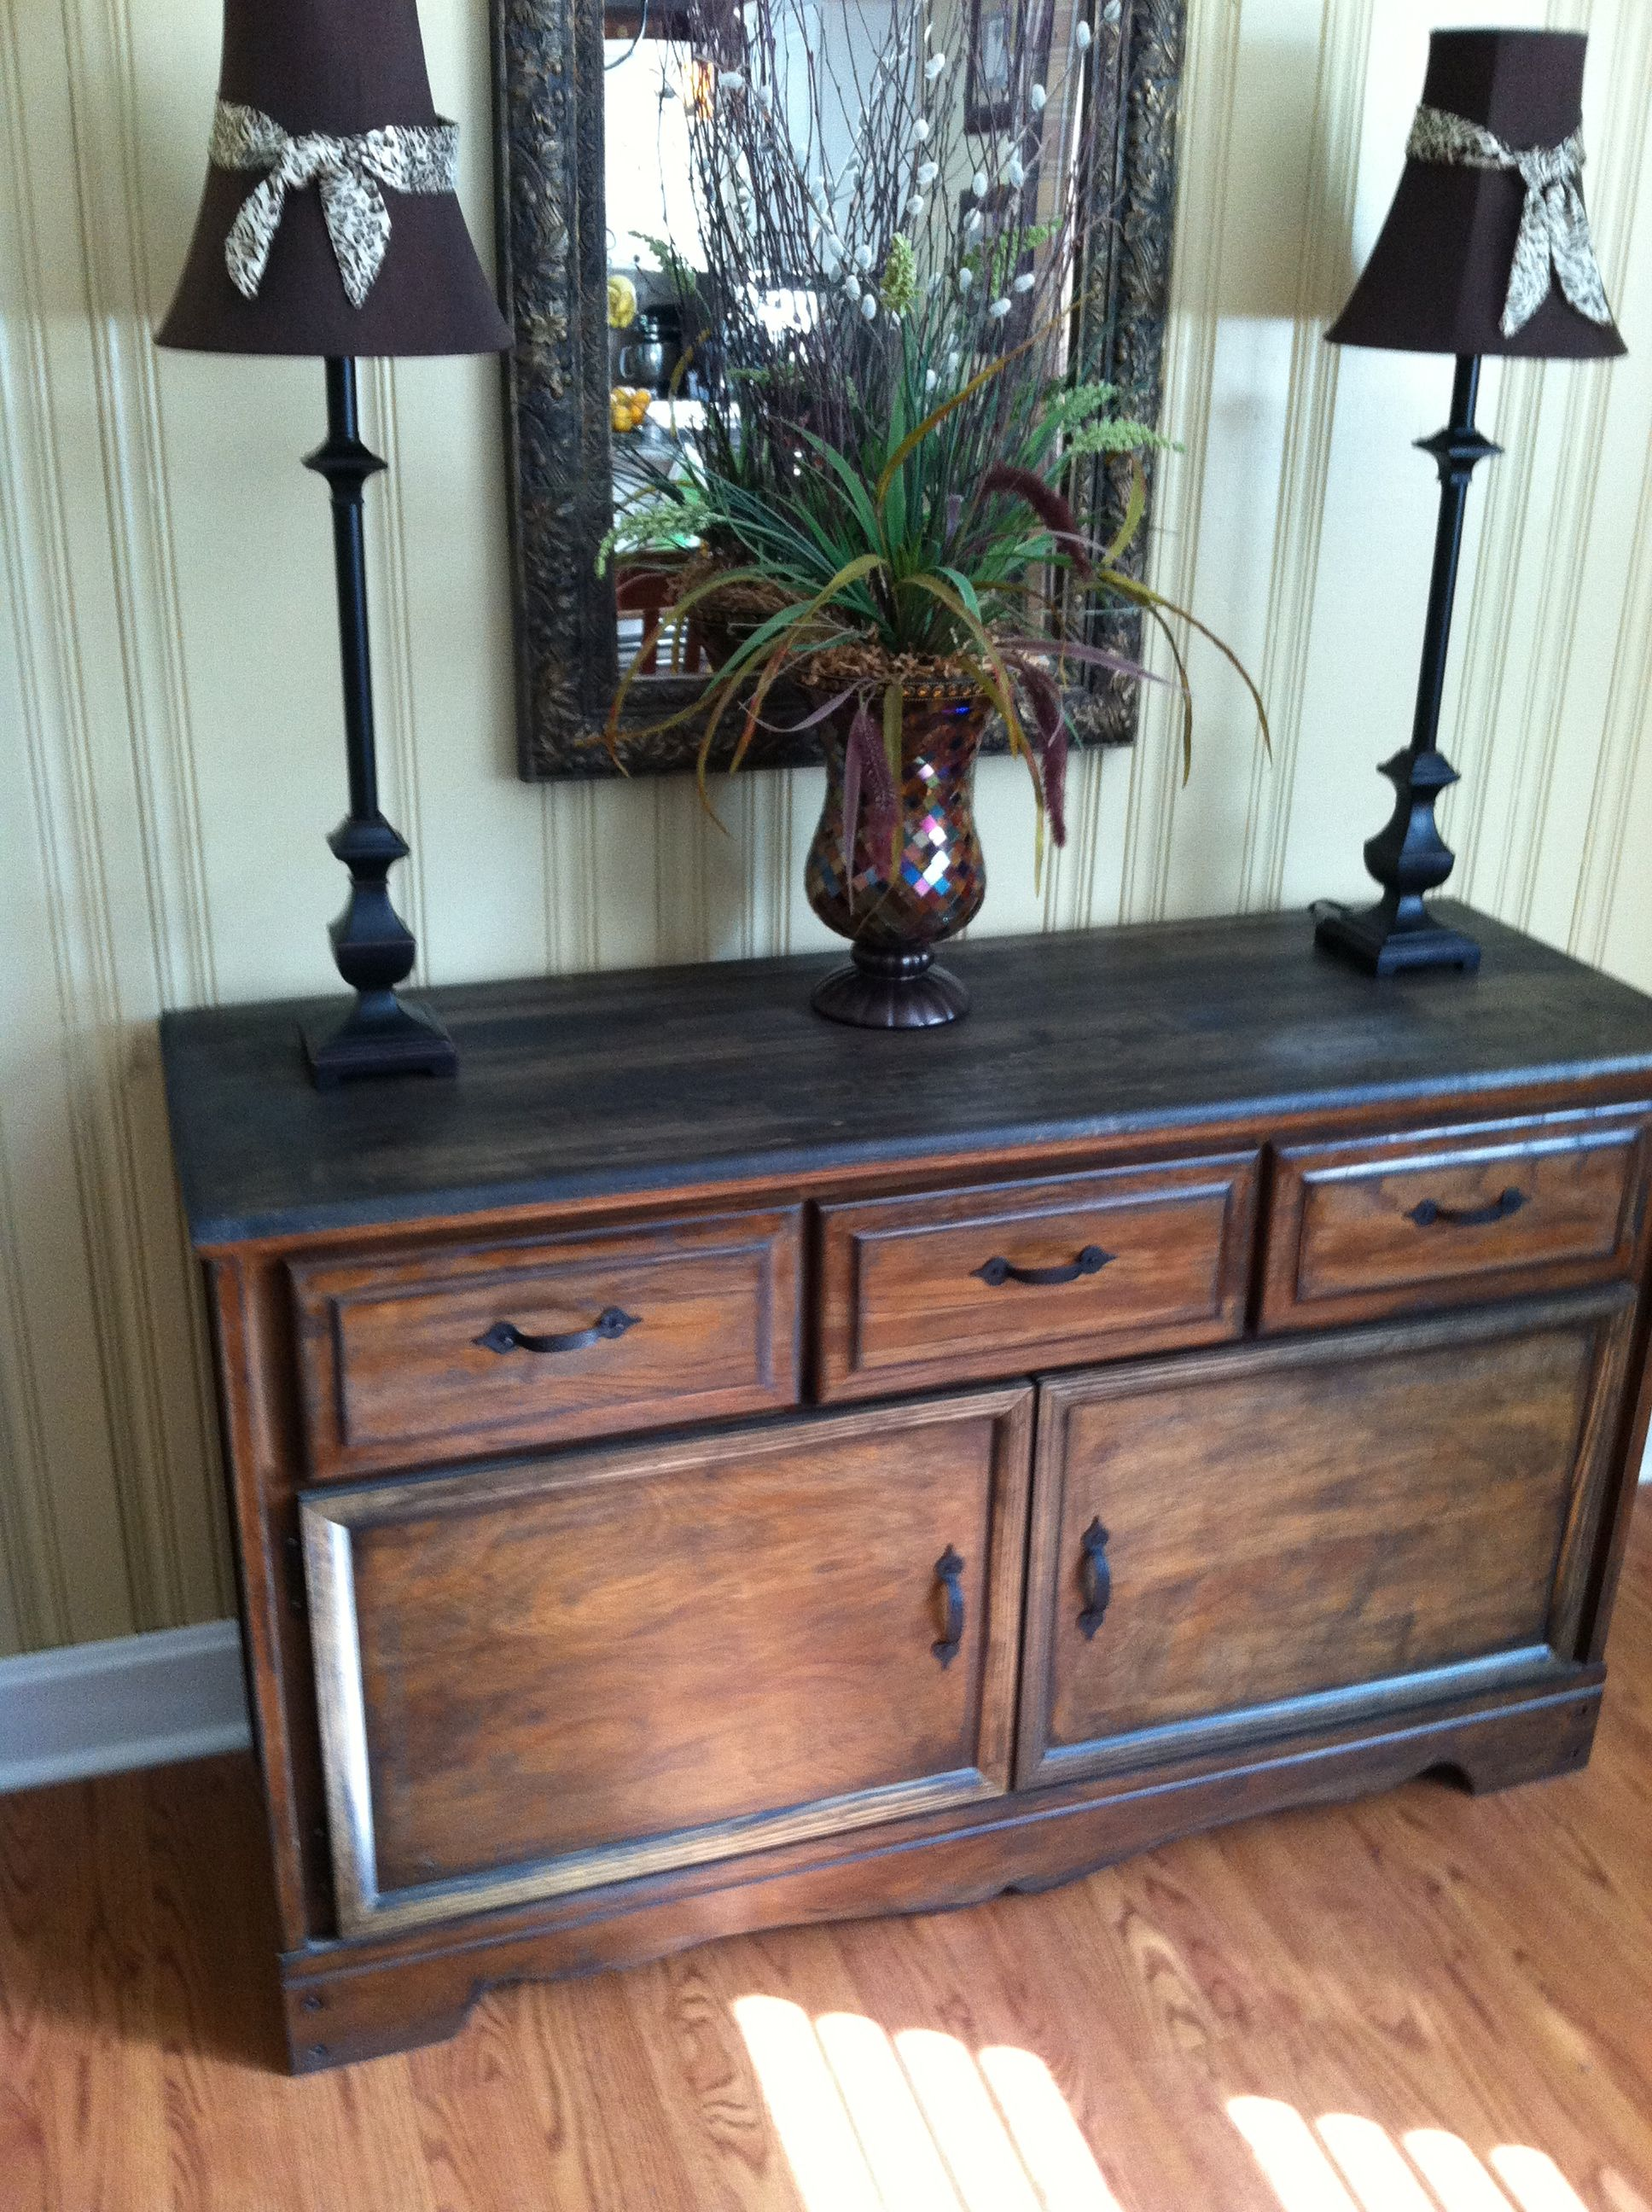 Old Refurbished Dresser Turned Buffet Table 35 Goodwill